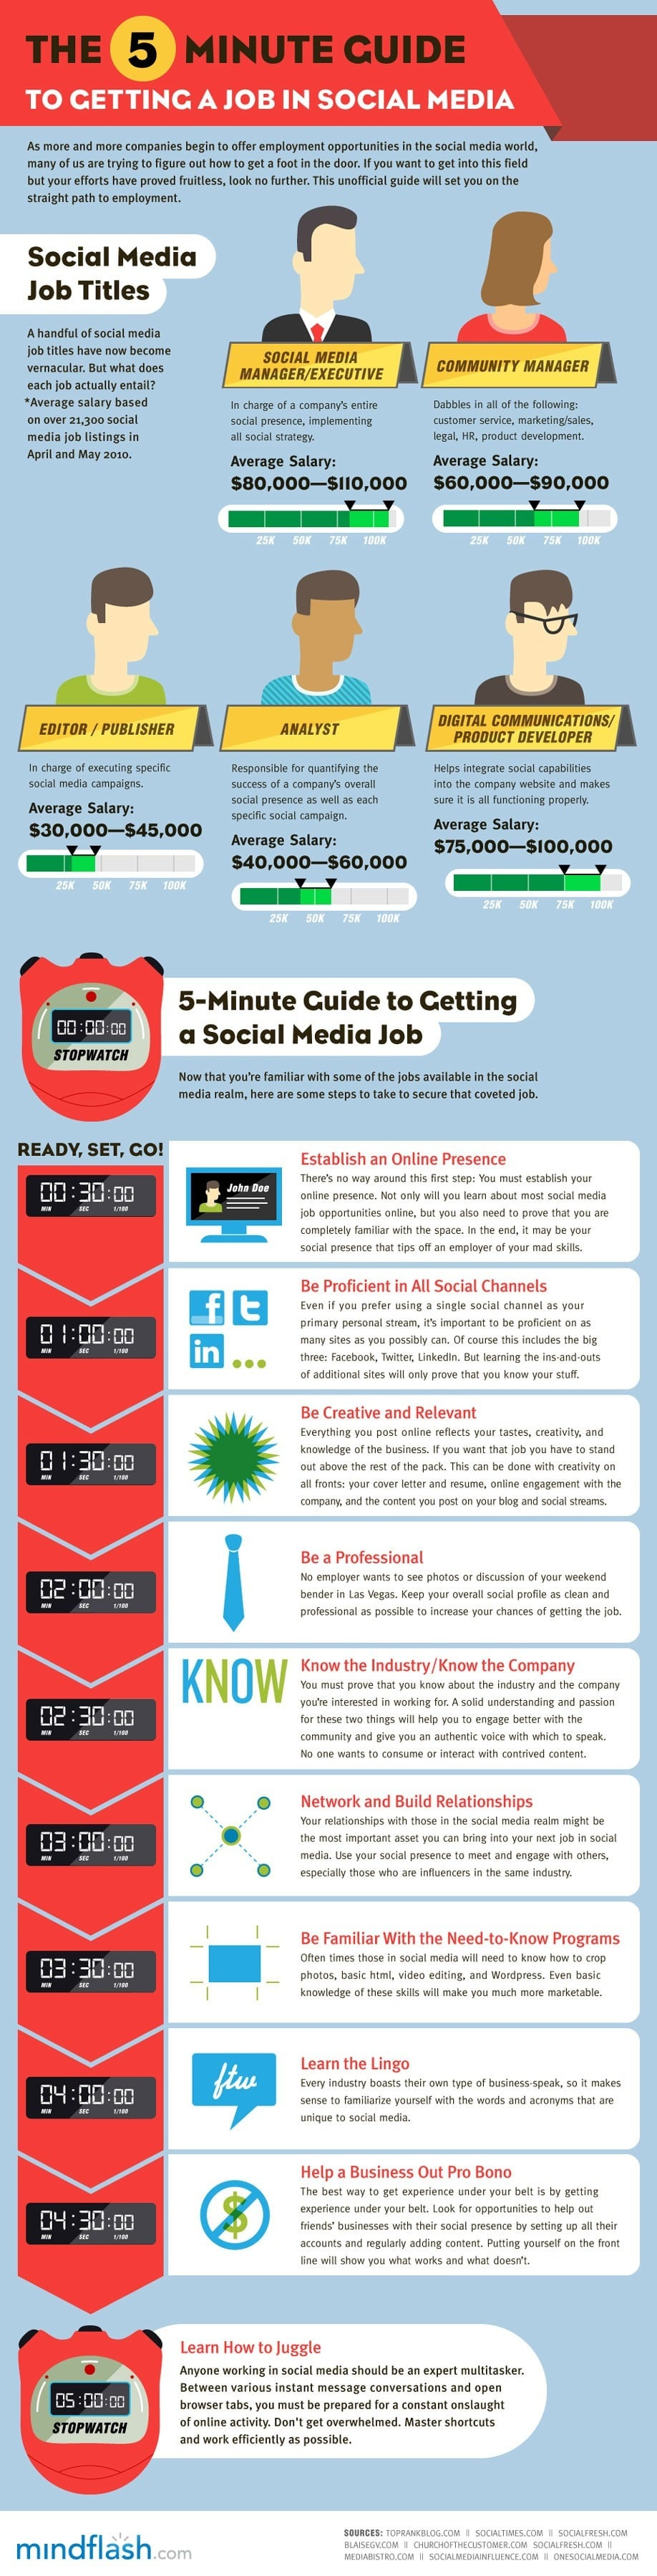 5 Minute Guide To Getting A Job Working In Social Media [Infographic]